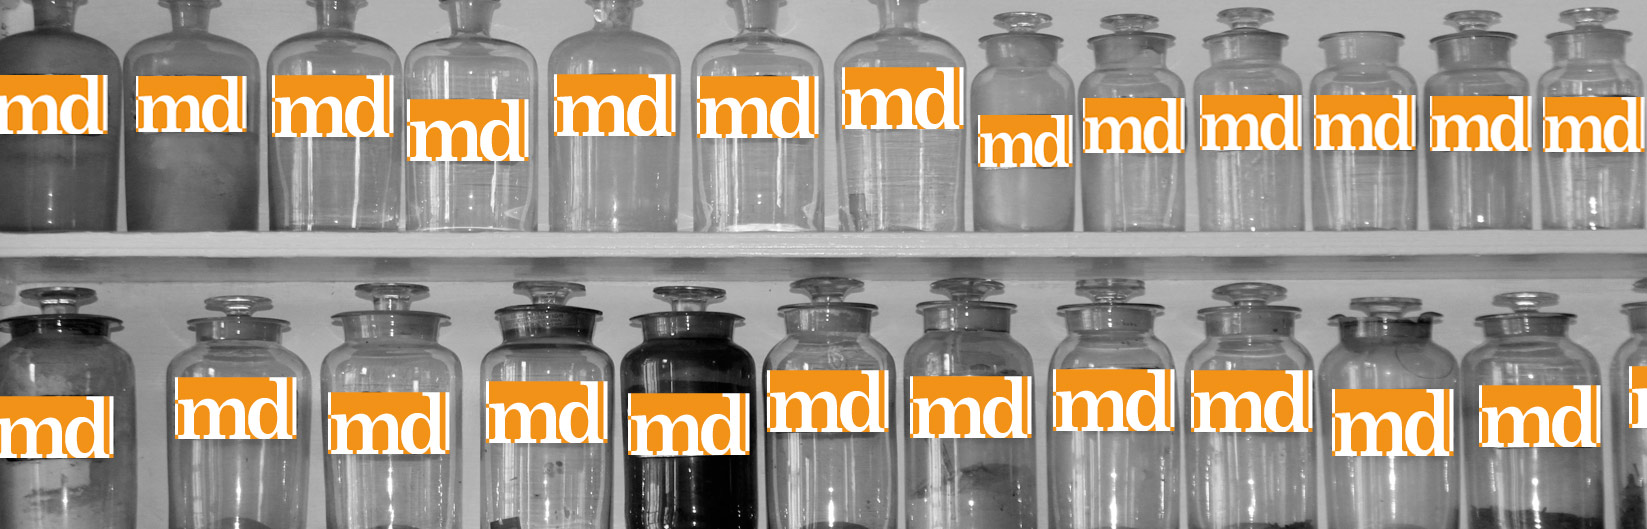 MIDDLETON DAVIES GRAPHIC DESIGN HEADER IMAGE